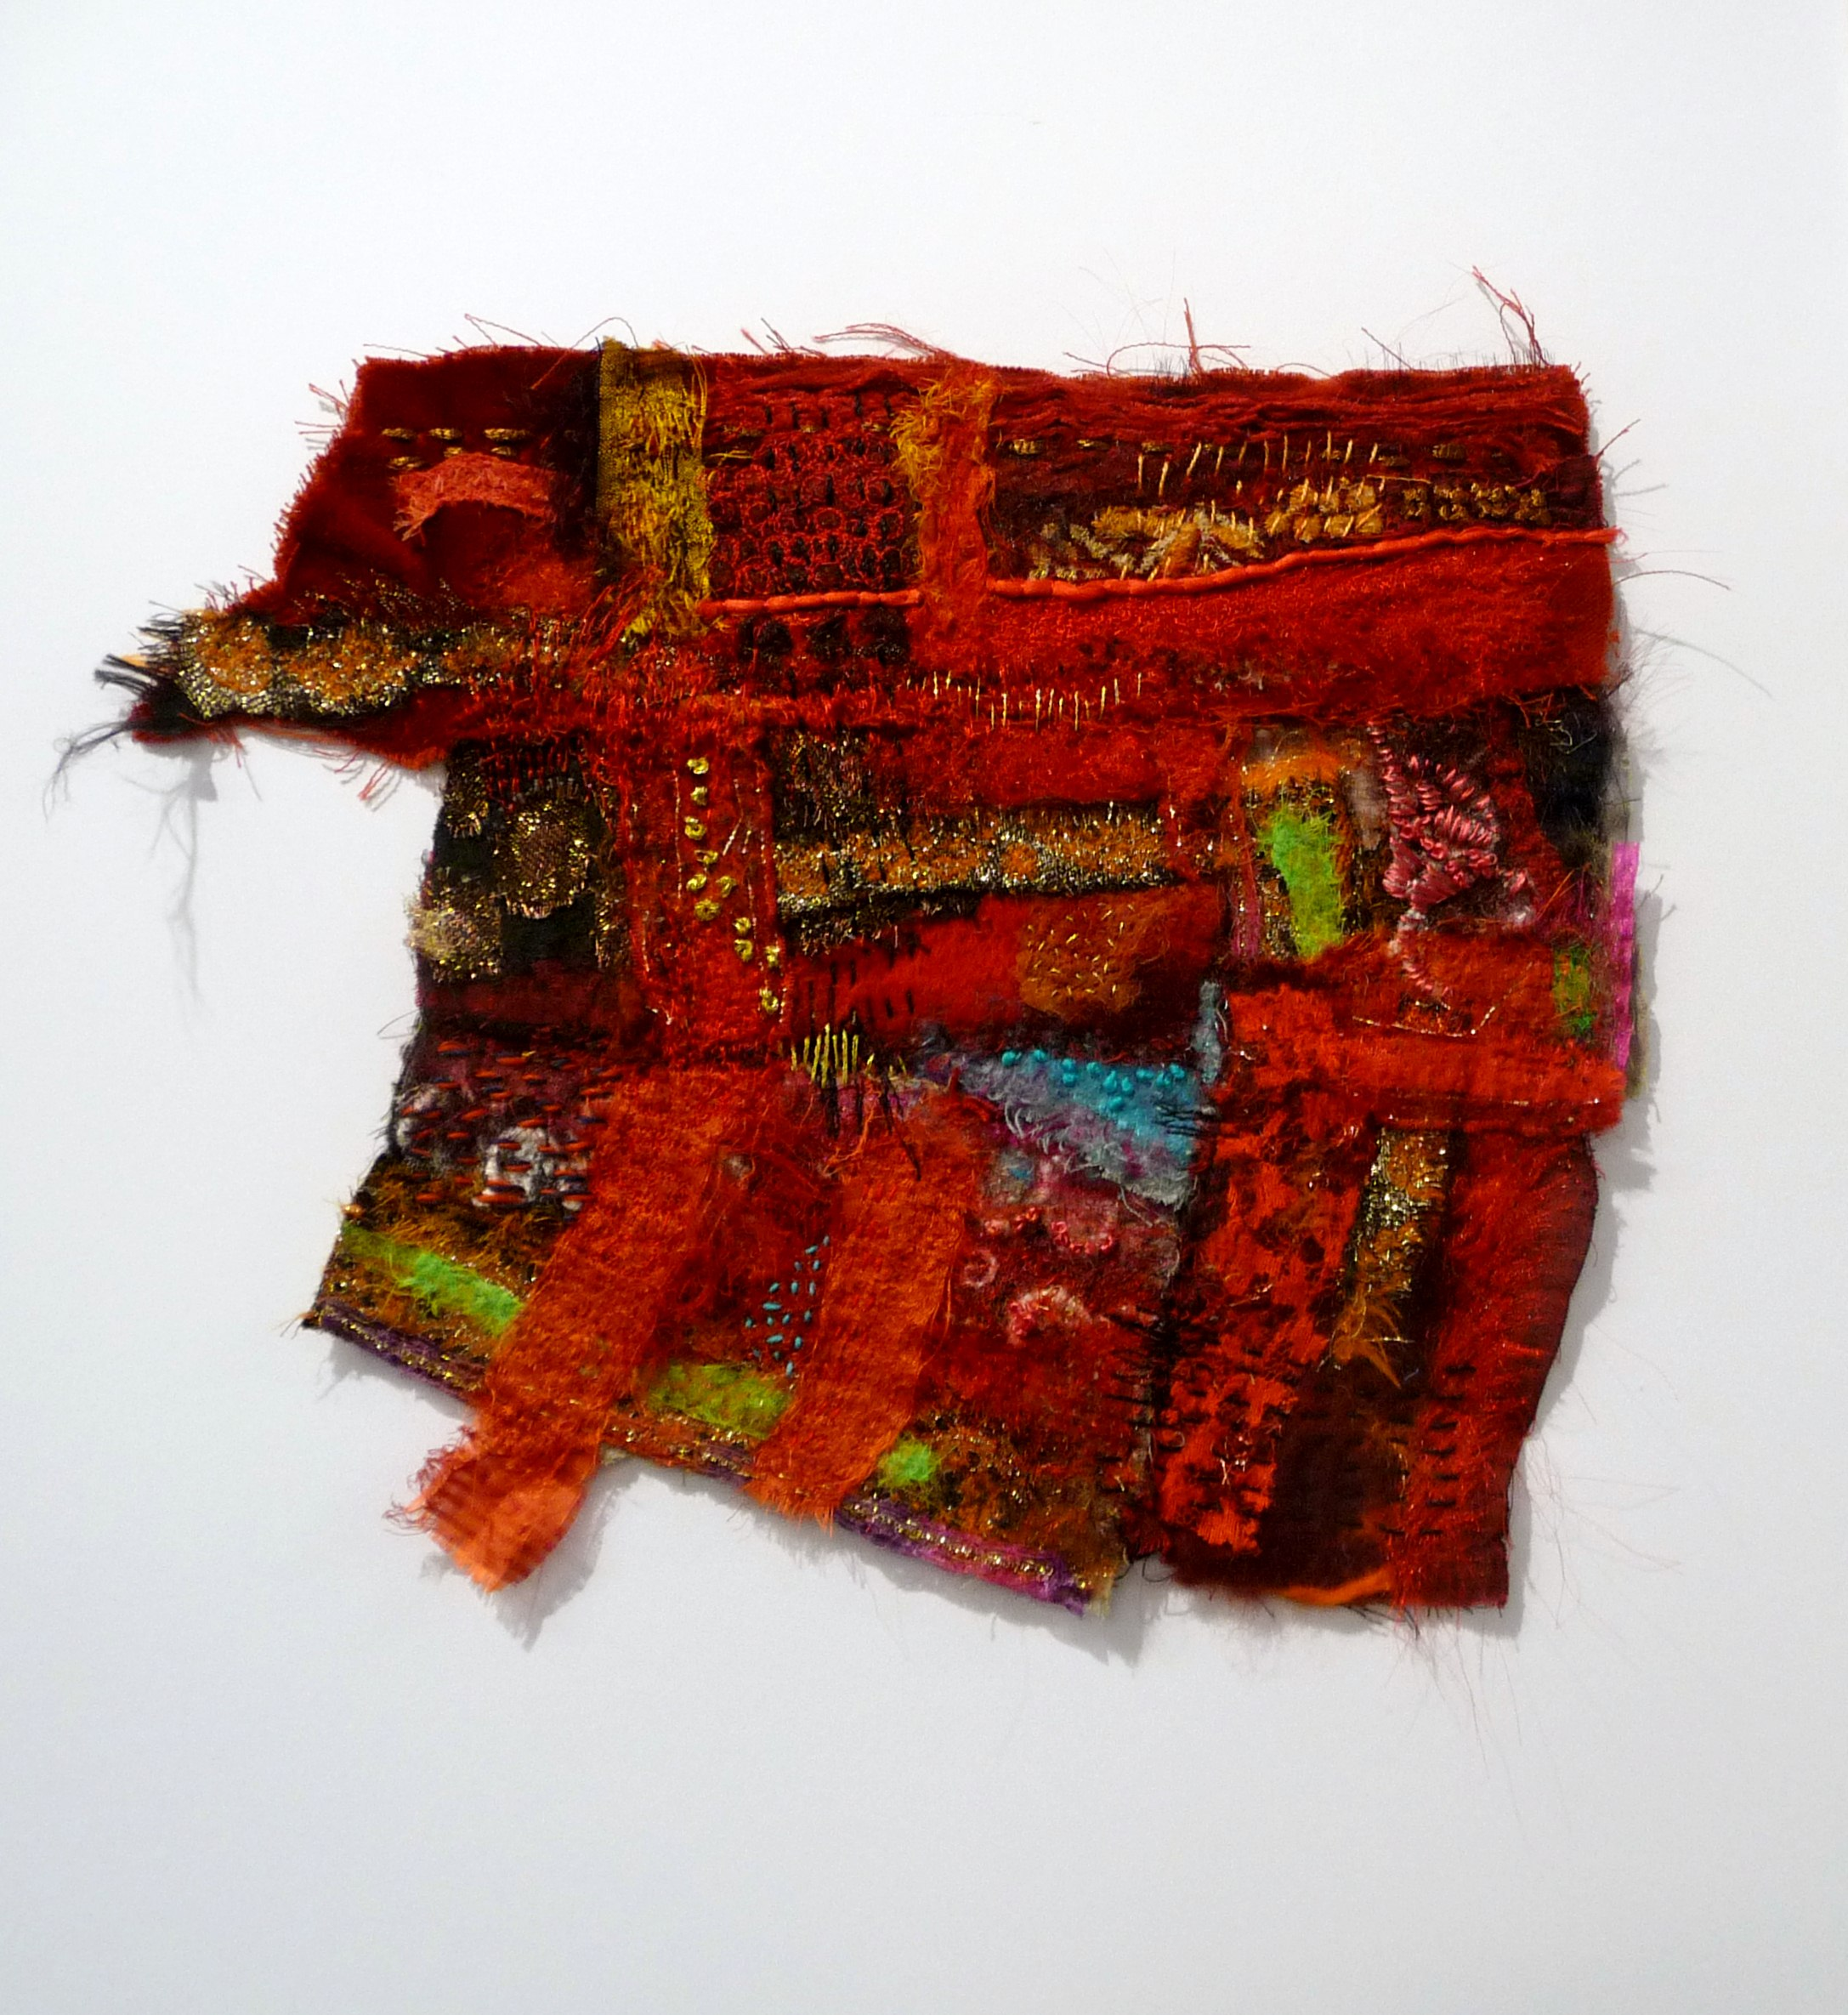 RED INDIAN DOOR by Beryl Woodcroft of TX Textile group